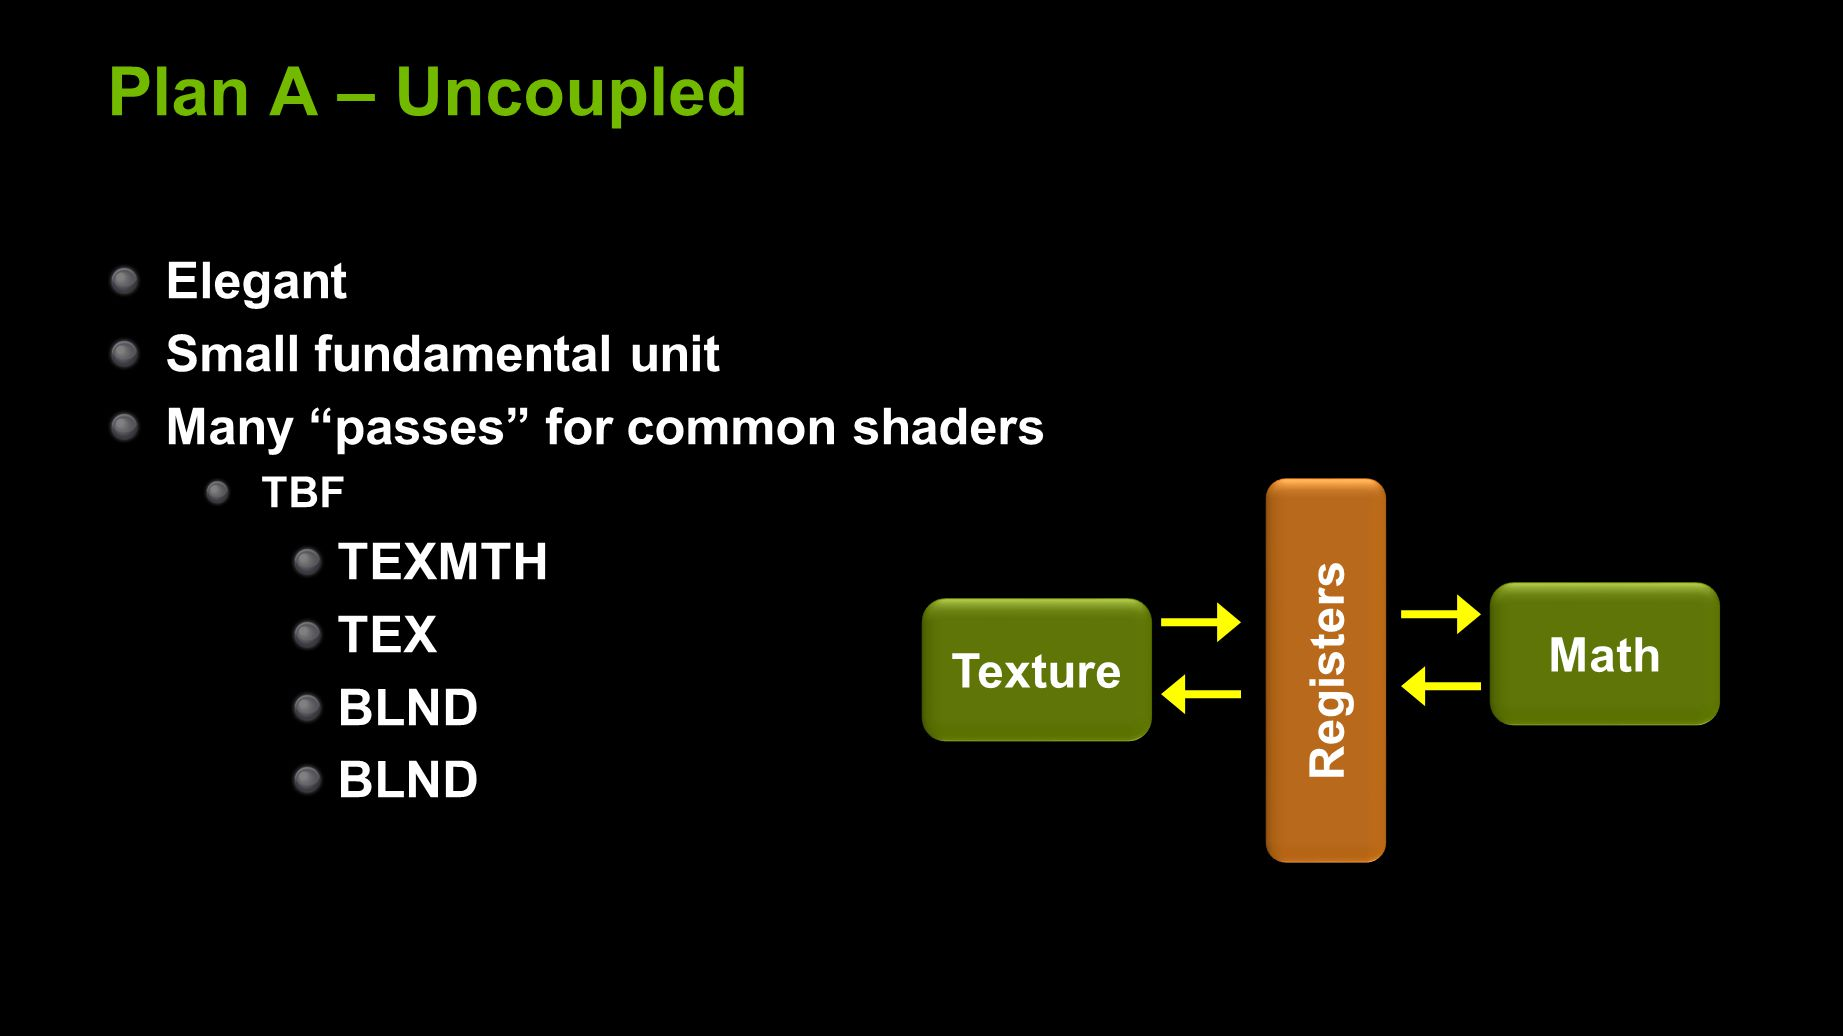 Plan A – Uncoupled Elegant Small fundamental unit Many passes for common shaders TBF TEXMTH TEX BLND Registers Texture Math